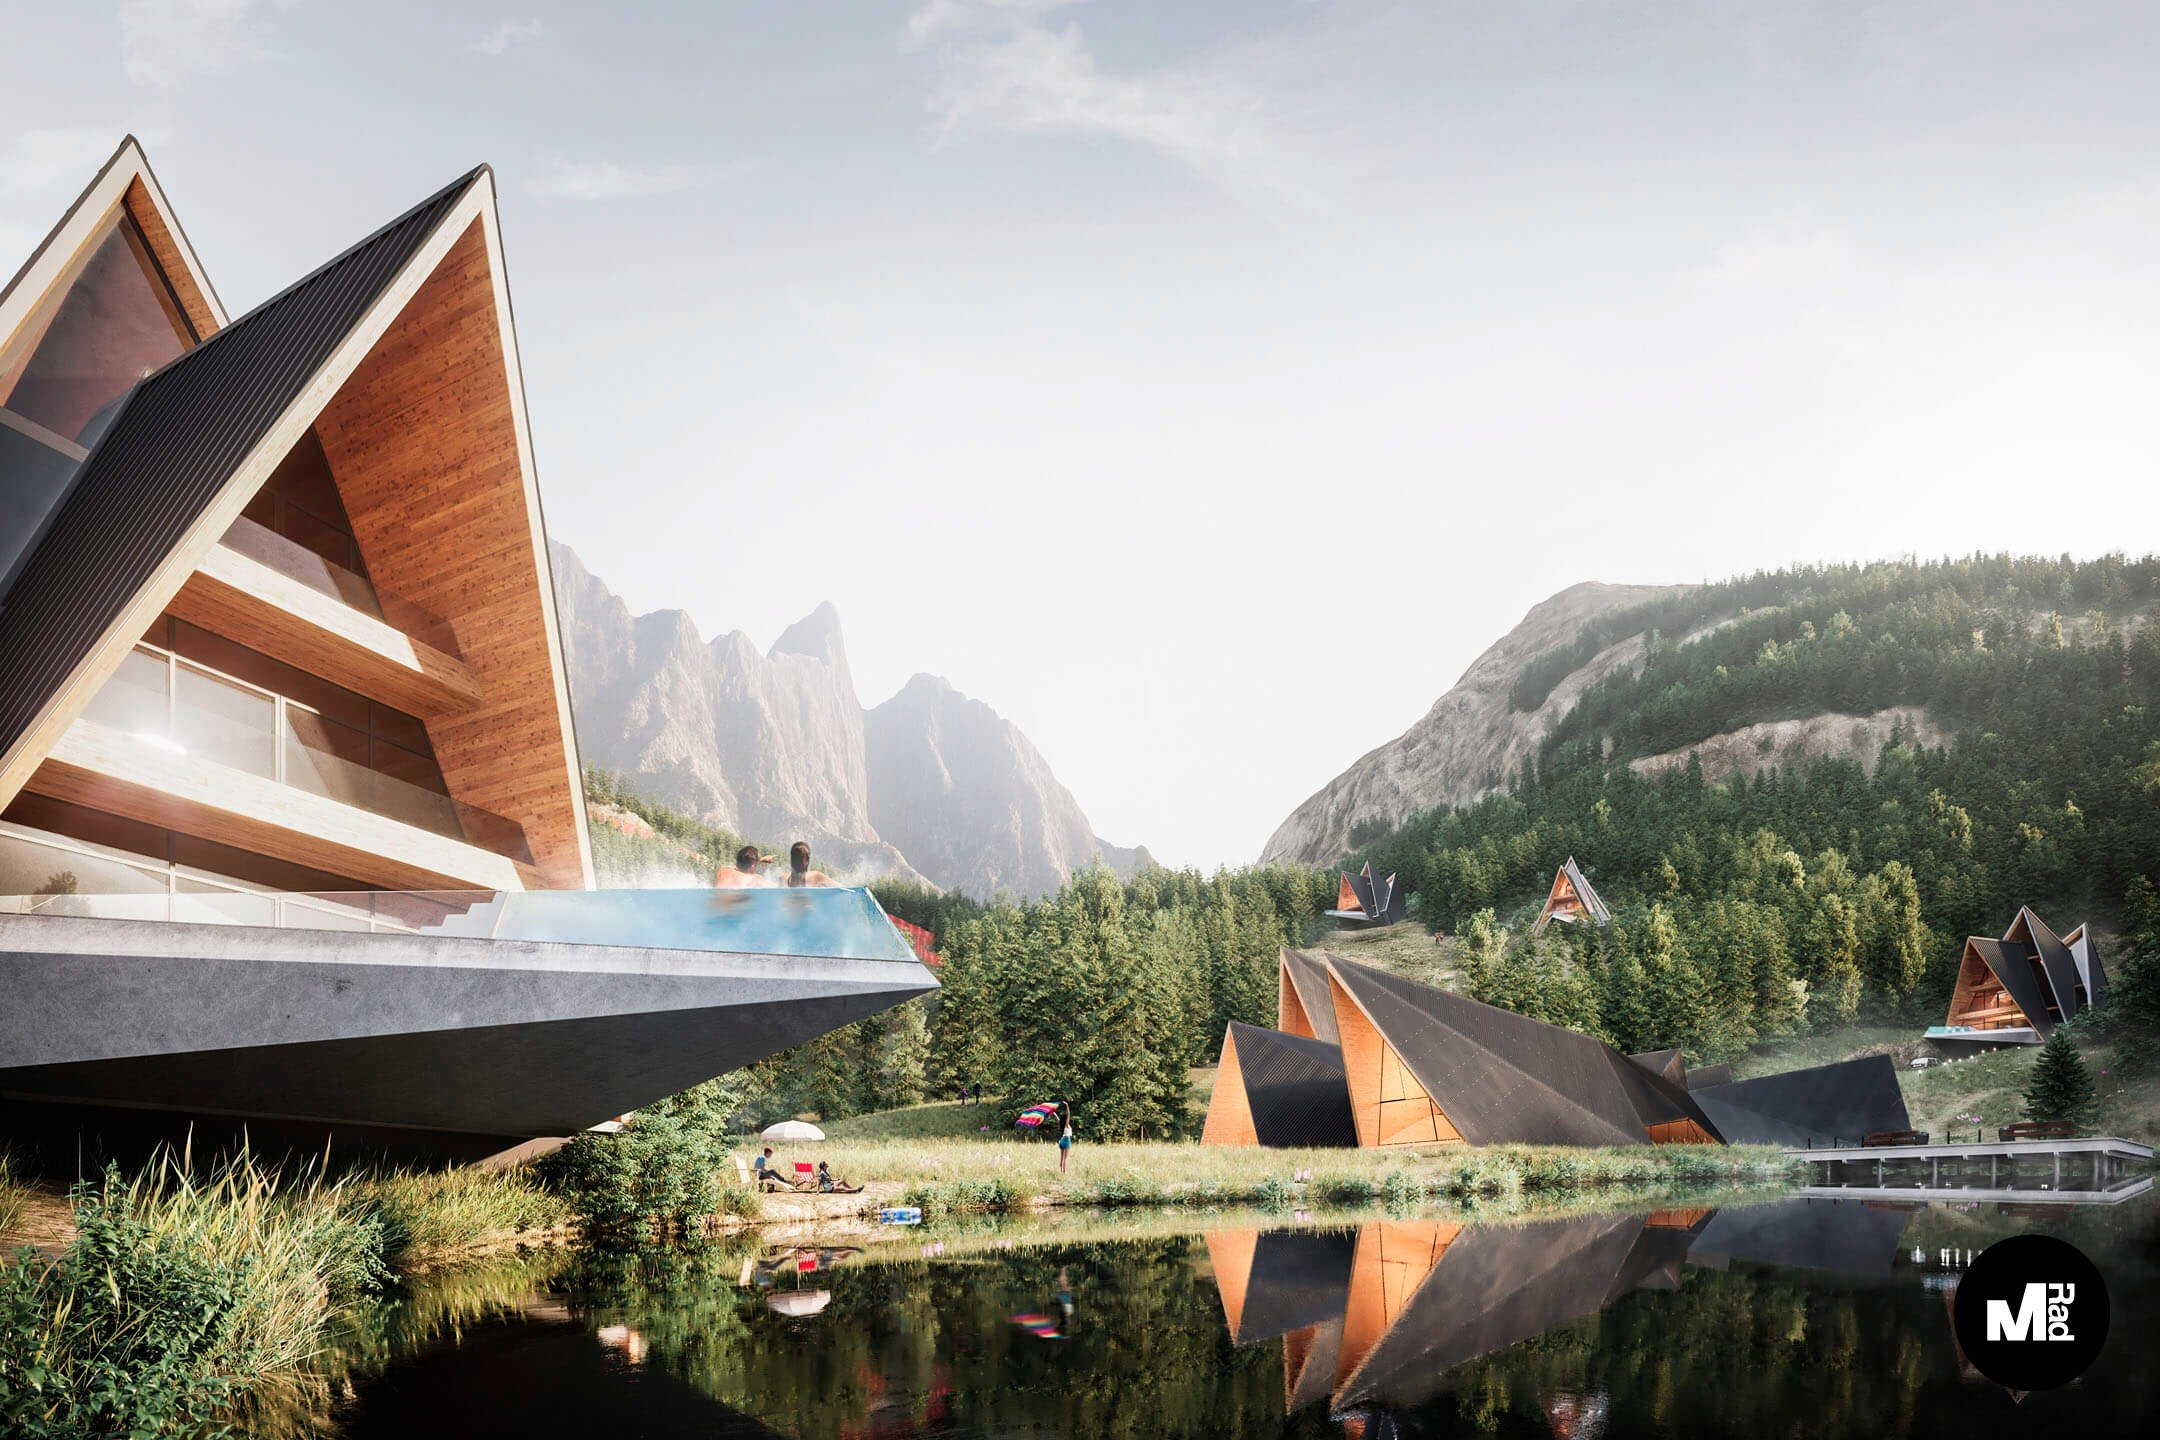 Photorealistic 3D Render of a Lake Resort Complex